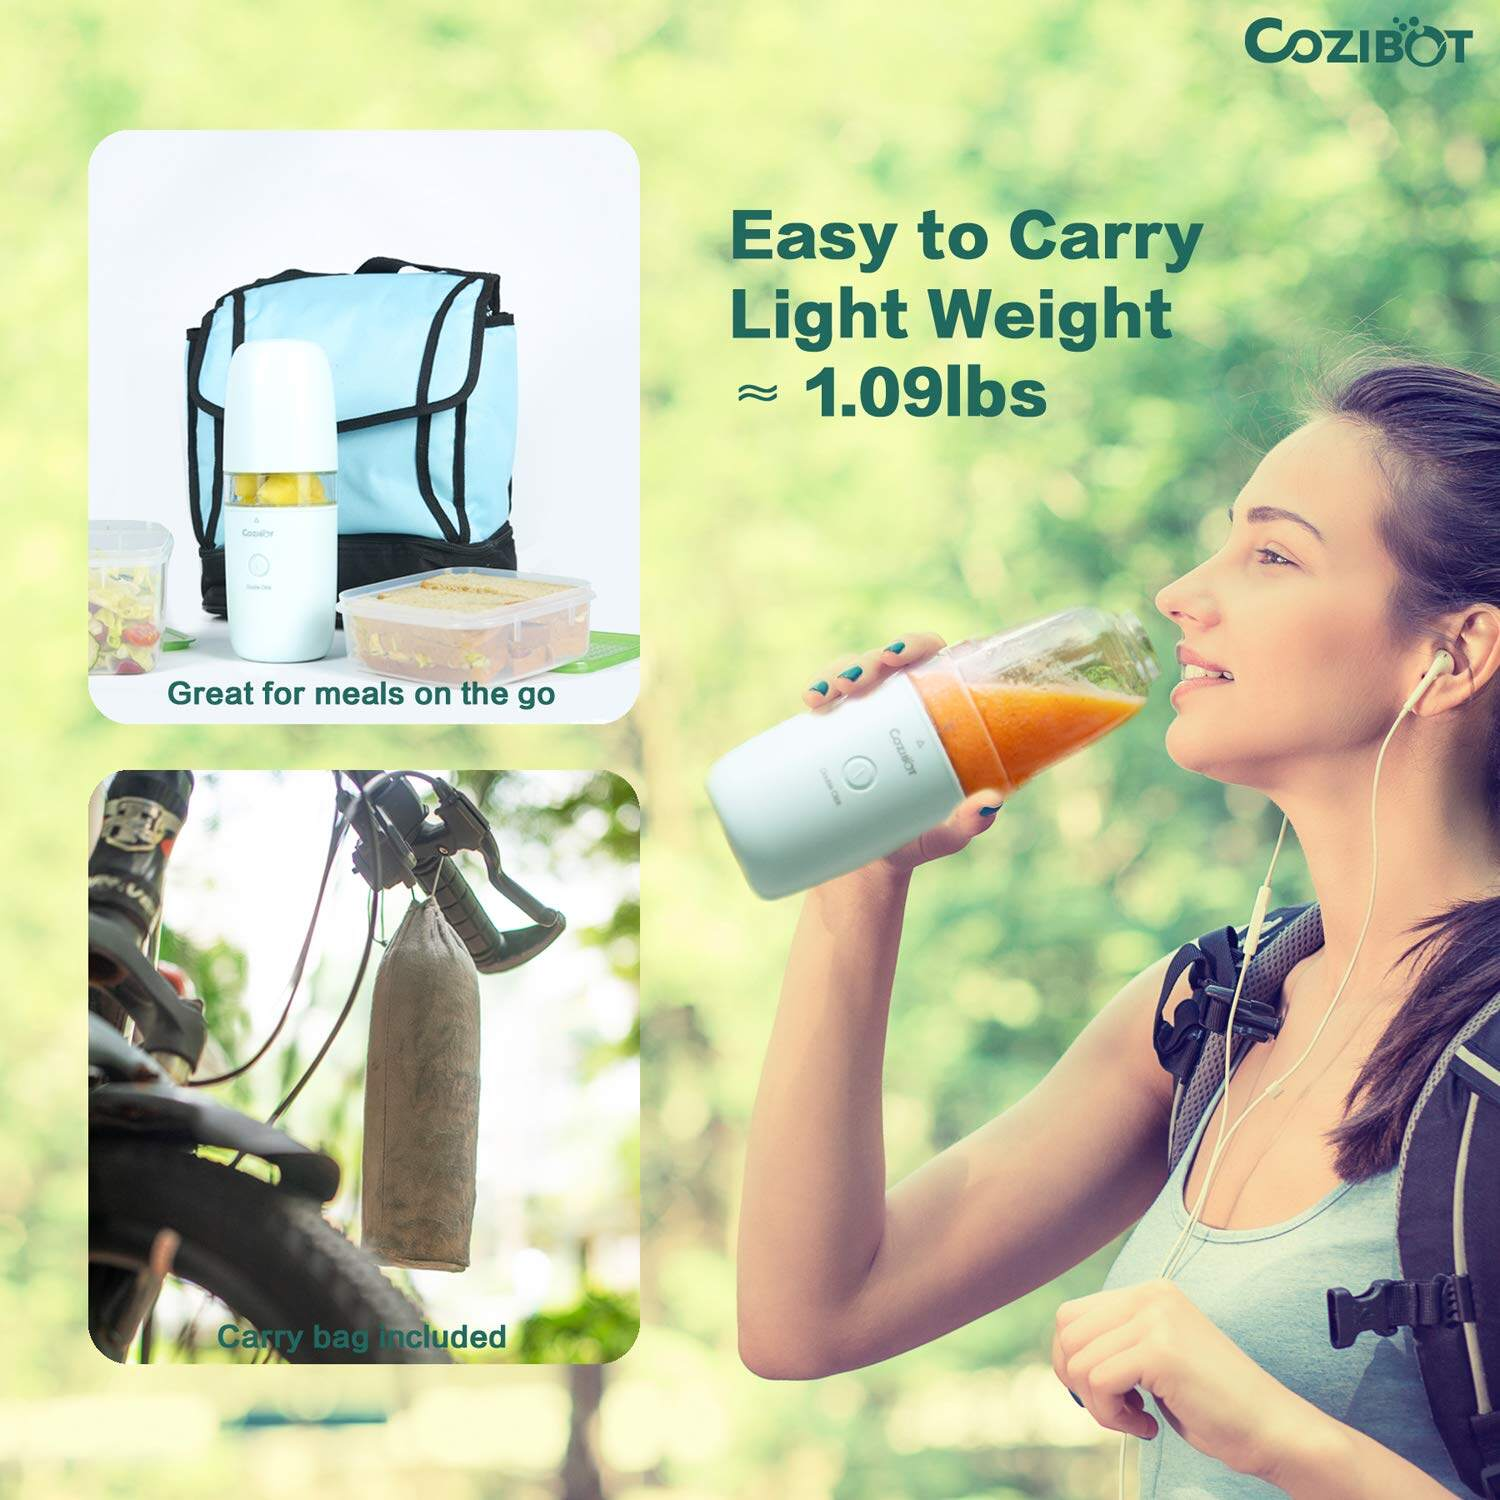 Single-Serve Travel Blender FDA BPA-Free Cozibot Travel Blender for Smoothies and Shakes Rechargeable USB Blender for On The Go Personal Blender Fruit Juicer Cup with Ice Tray Portable Blender